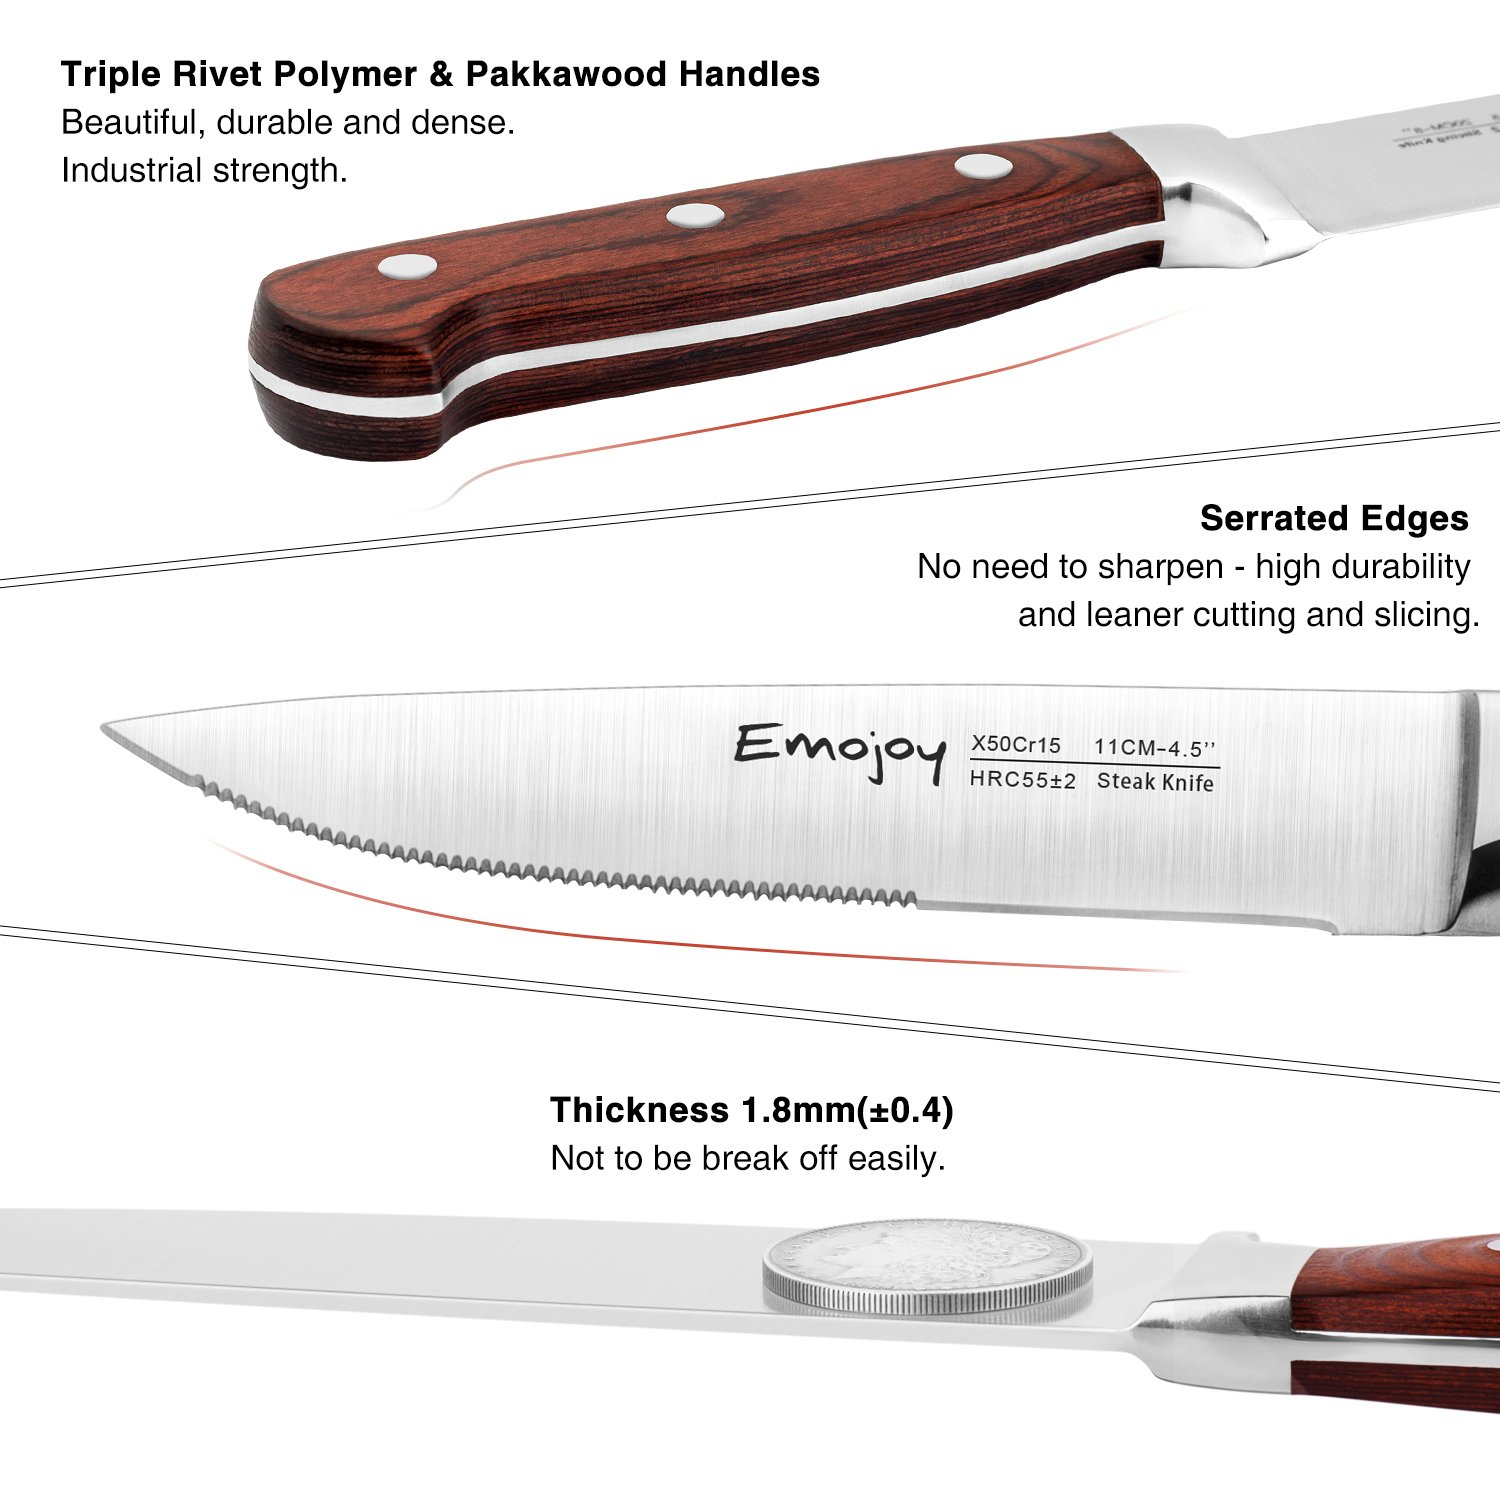 Steak knives, Emojoy Steak knife set, Stainless Steel Steak Knives Serrated, German Stainless Steel with Highly Resistant and Durable Pakkawood Handle (Steak Knives Set of 8) by Emojoy (Image #3)